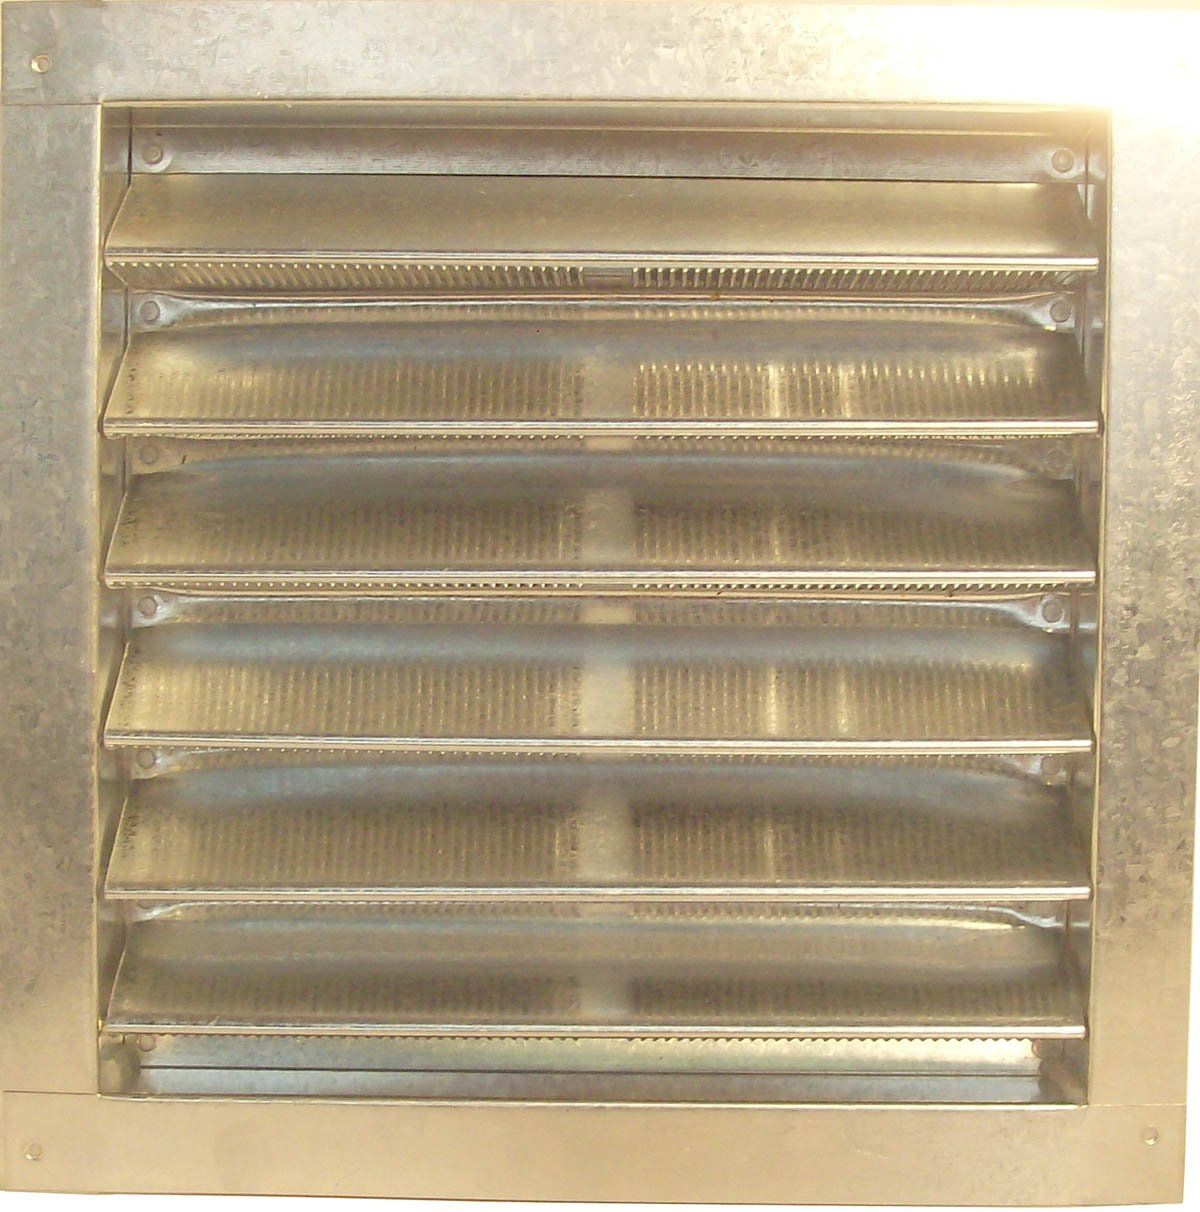 Norwesco 553220 Galvanized Recessed Attic Vent 12 Inch By 12 Inch Read More Reviews Of The Product By Visiting The Link On The Attic Vents Roof Vents Vented